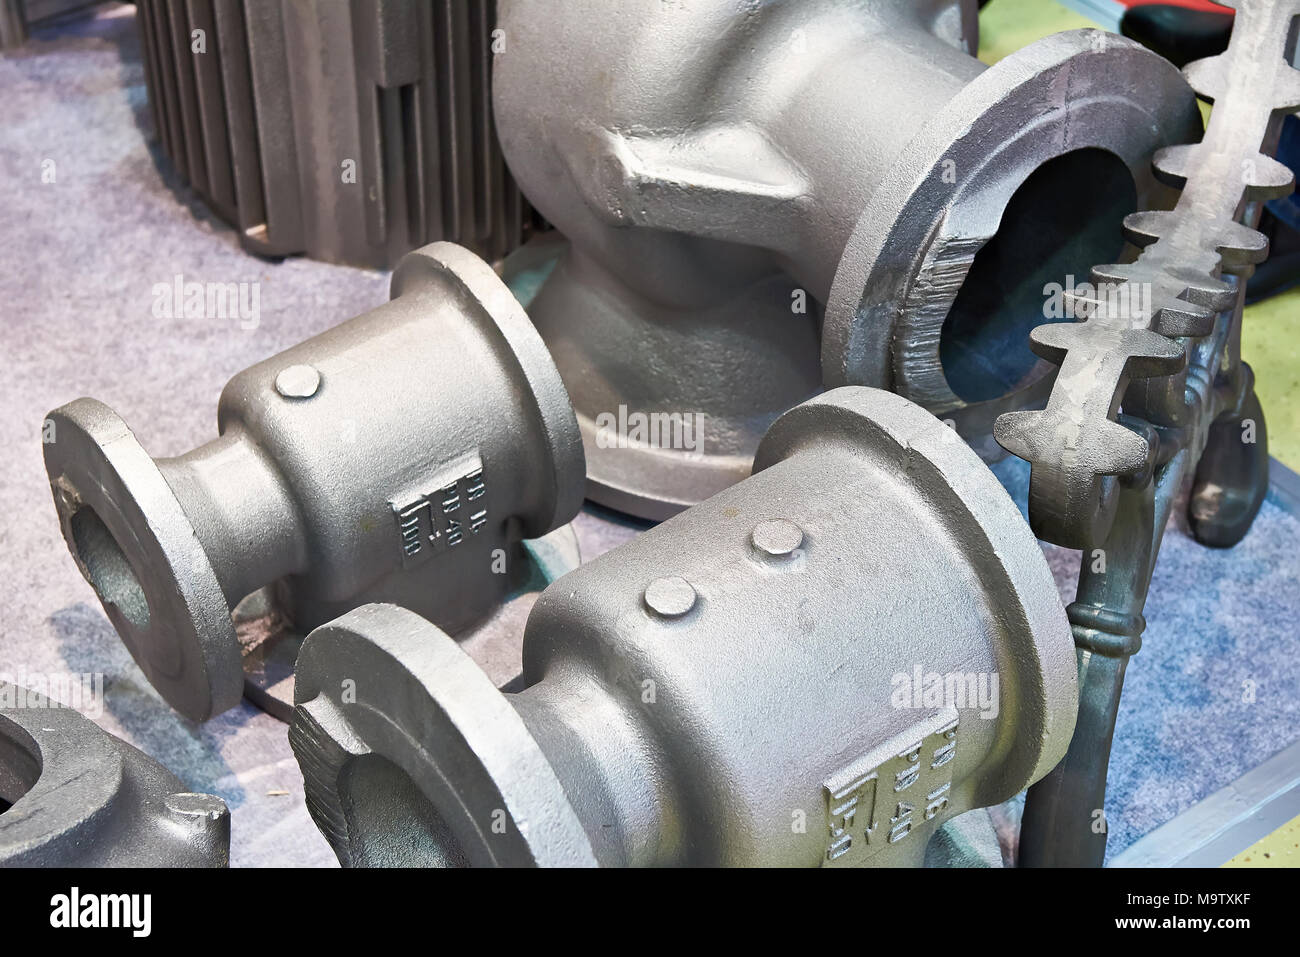 Cast iron alloy preform for plumbing taps and valves Stock Photo ...